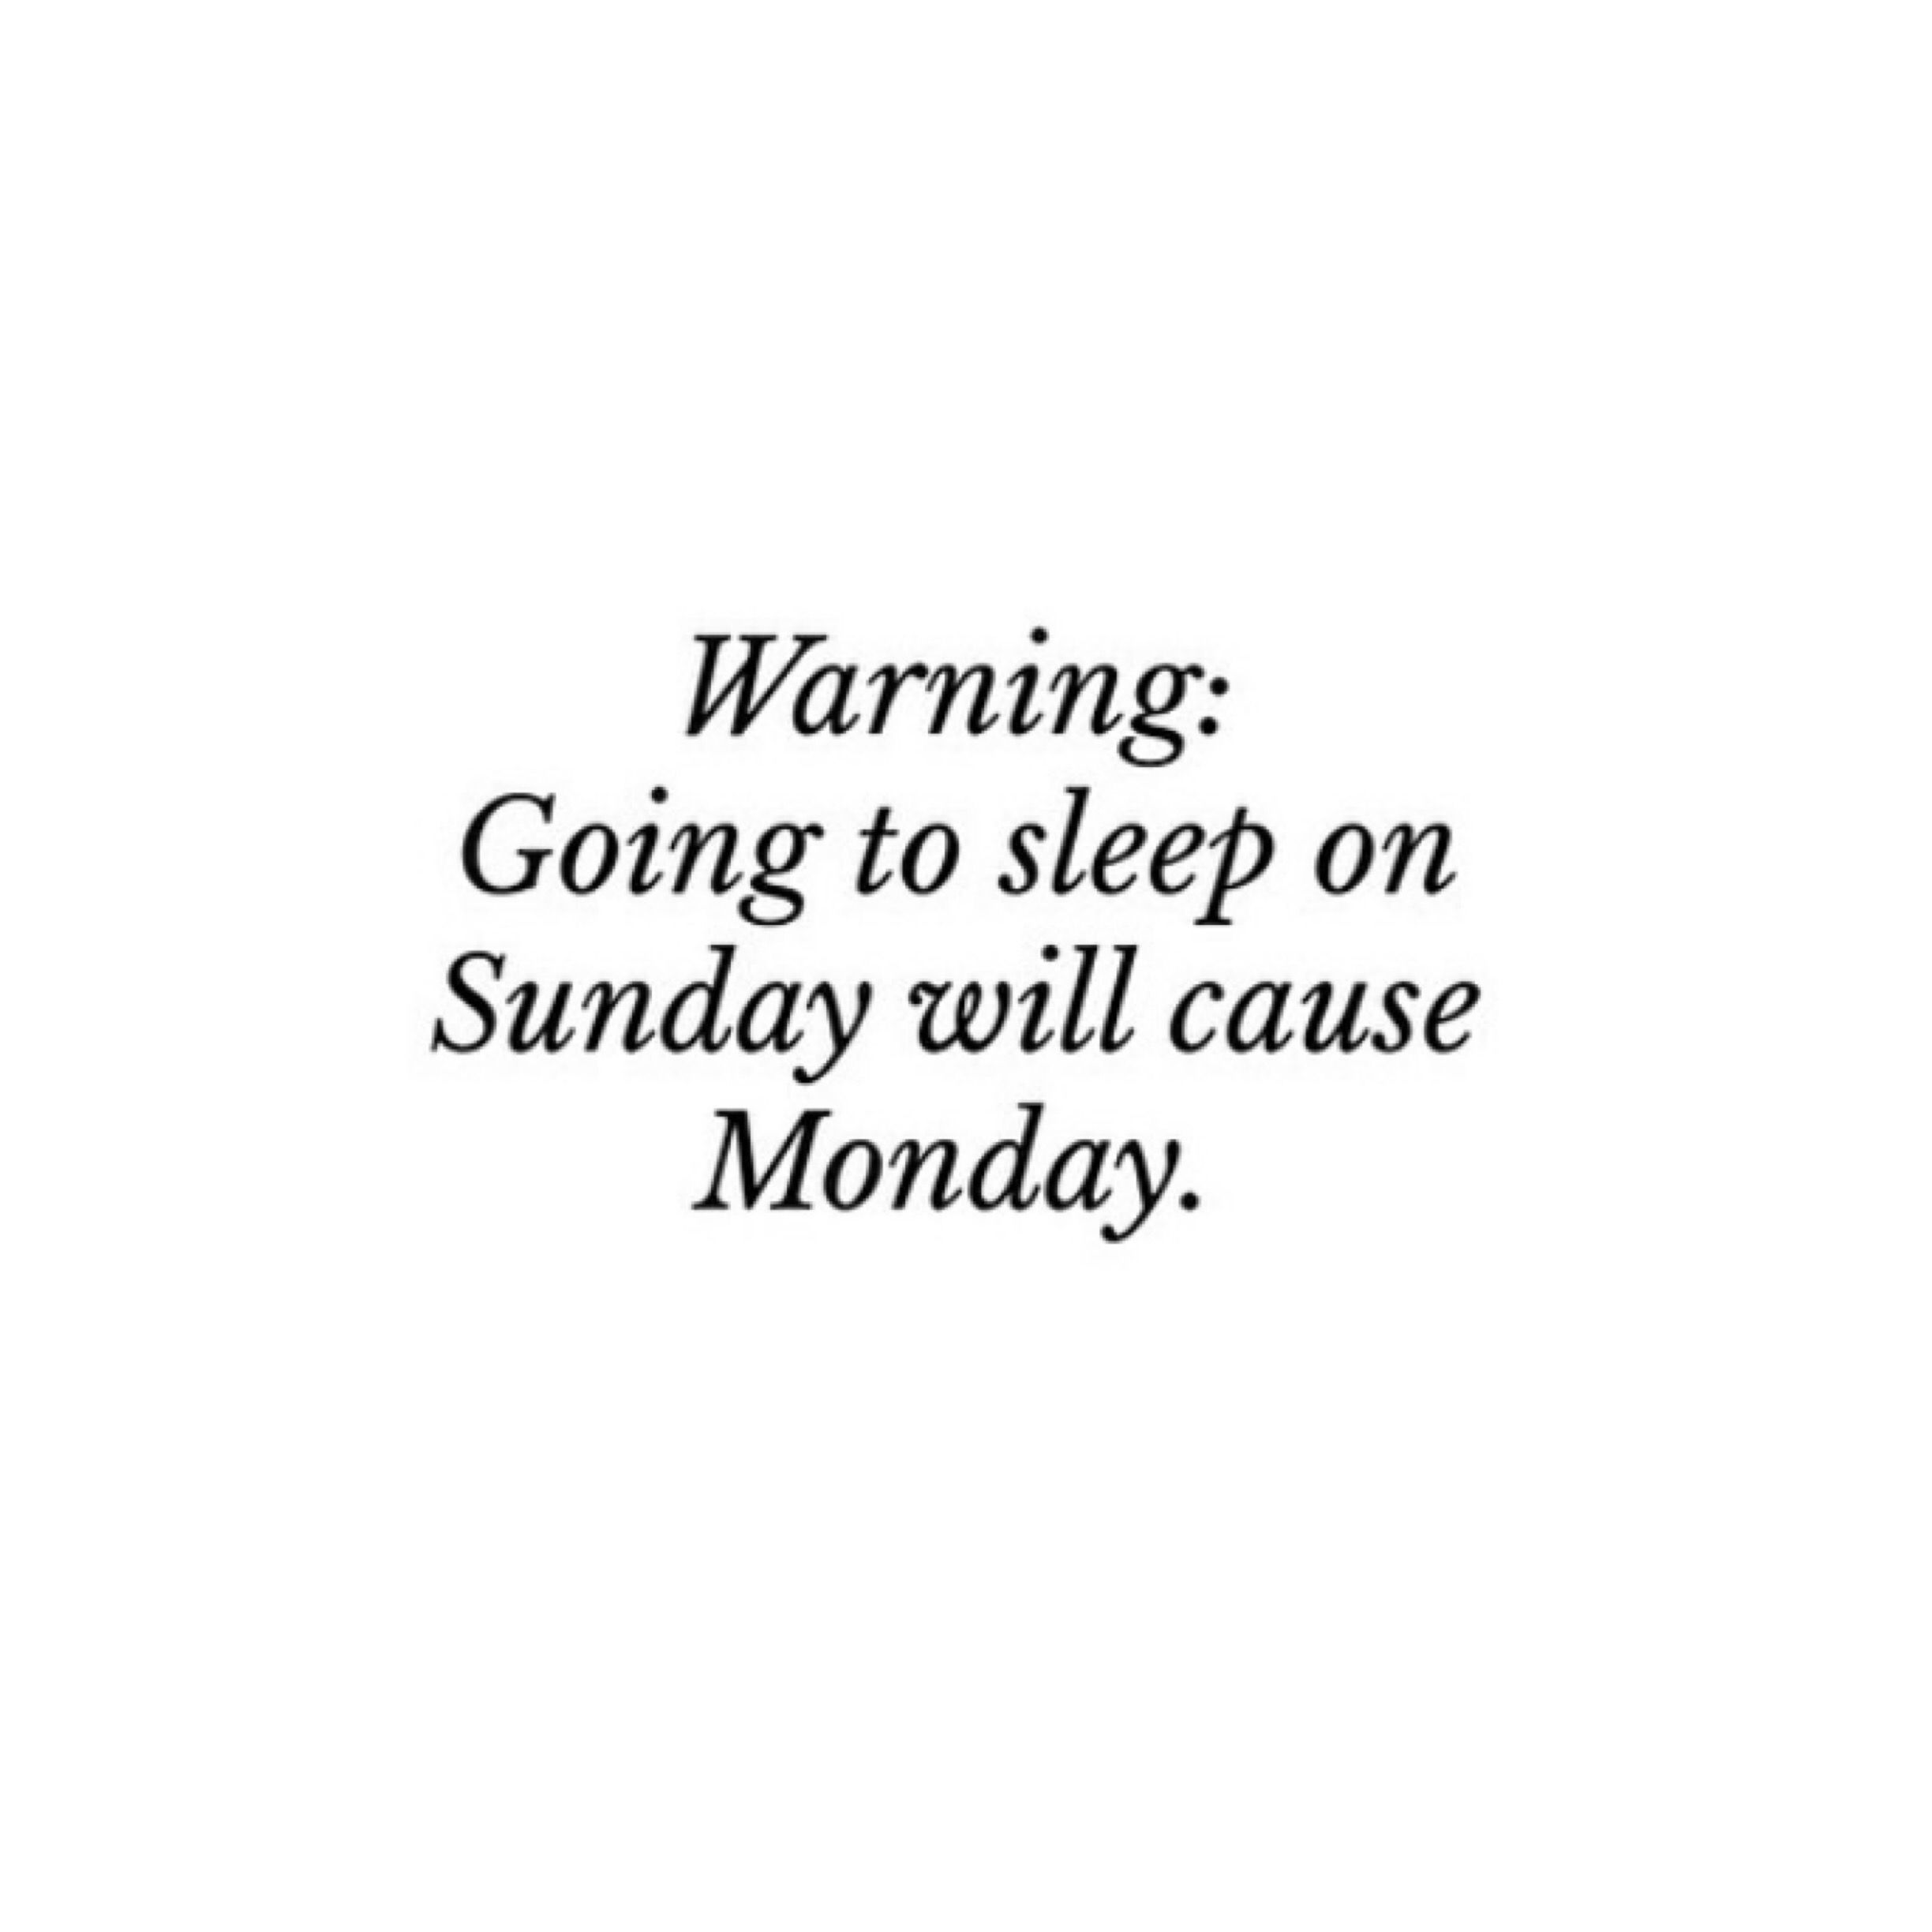 I always try to prevent Monday by never sleeping on Sunday nights.